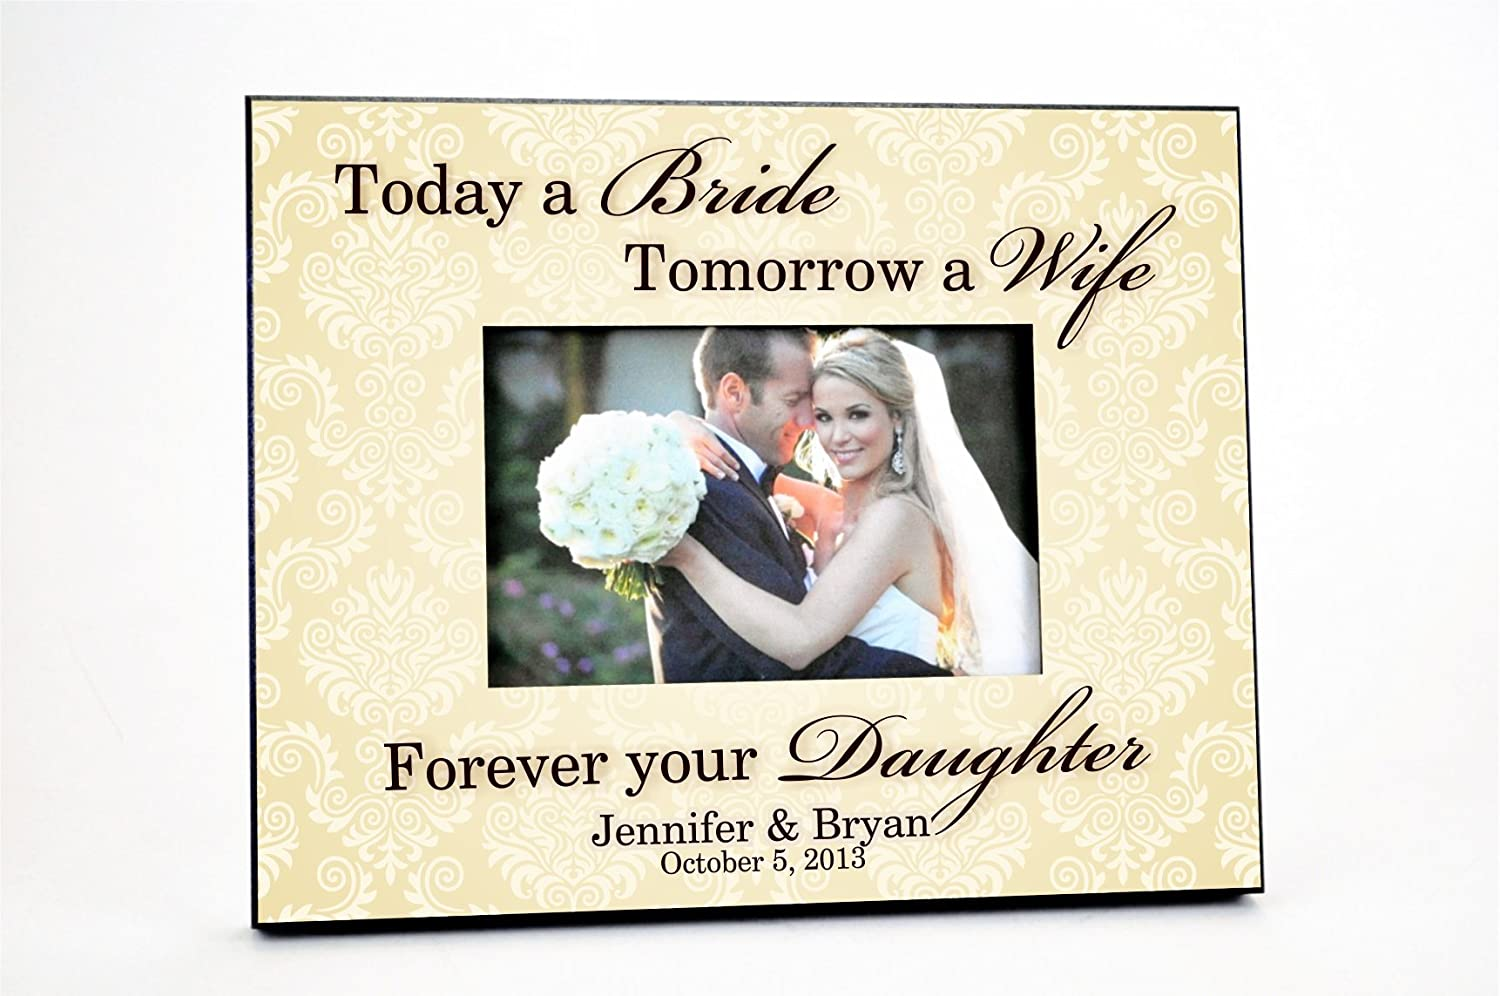 Personalized Wedding Picture Frame for 4 x 6 Photo 8 x 10 Overall Size Today A Bride Tomorrow A Wife Forever Your Daughter